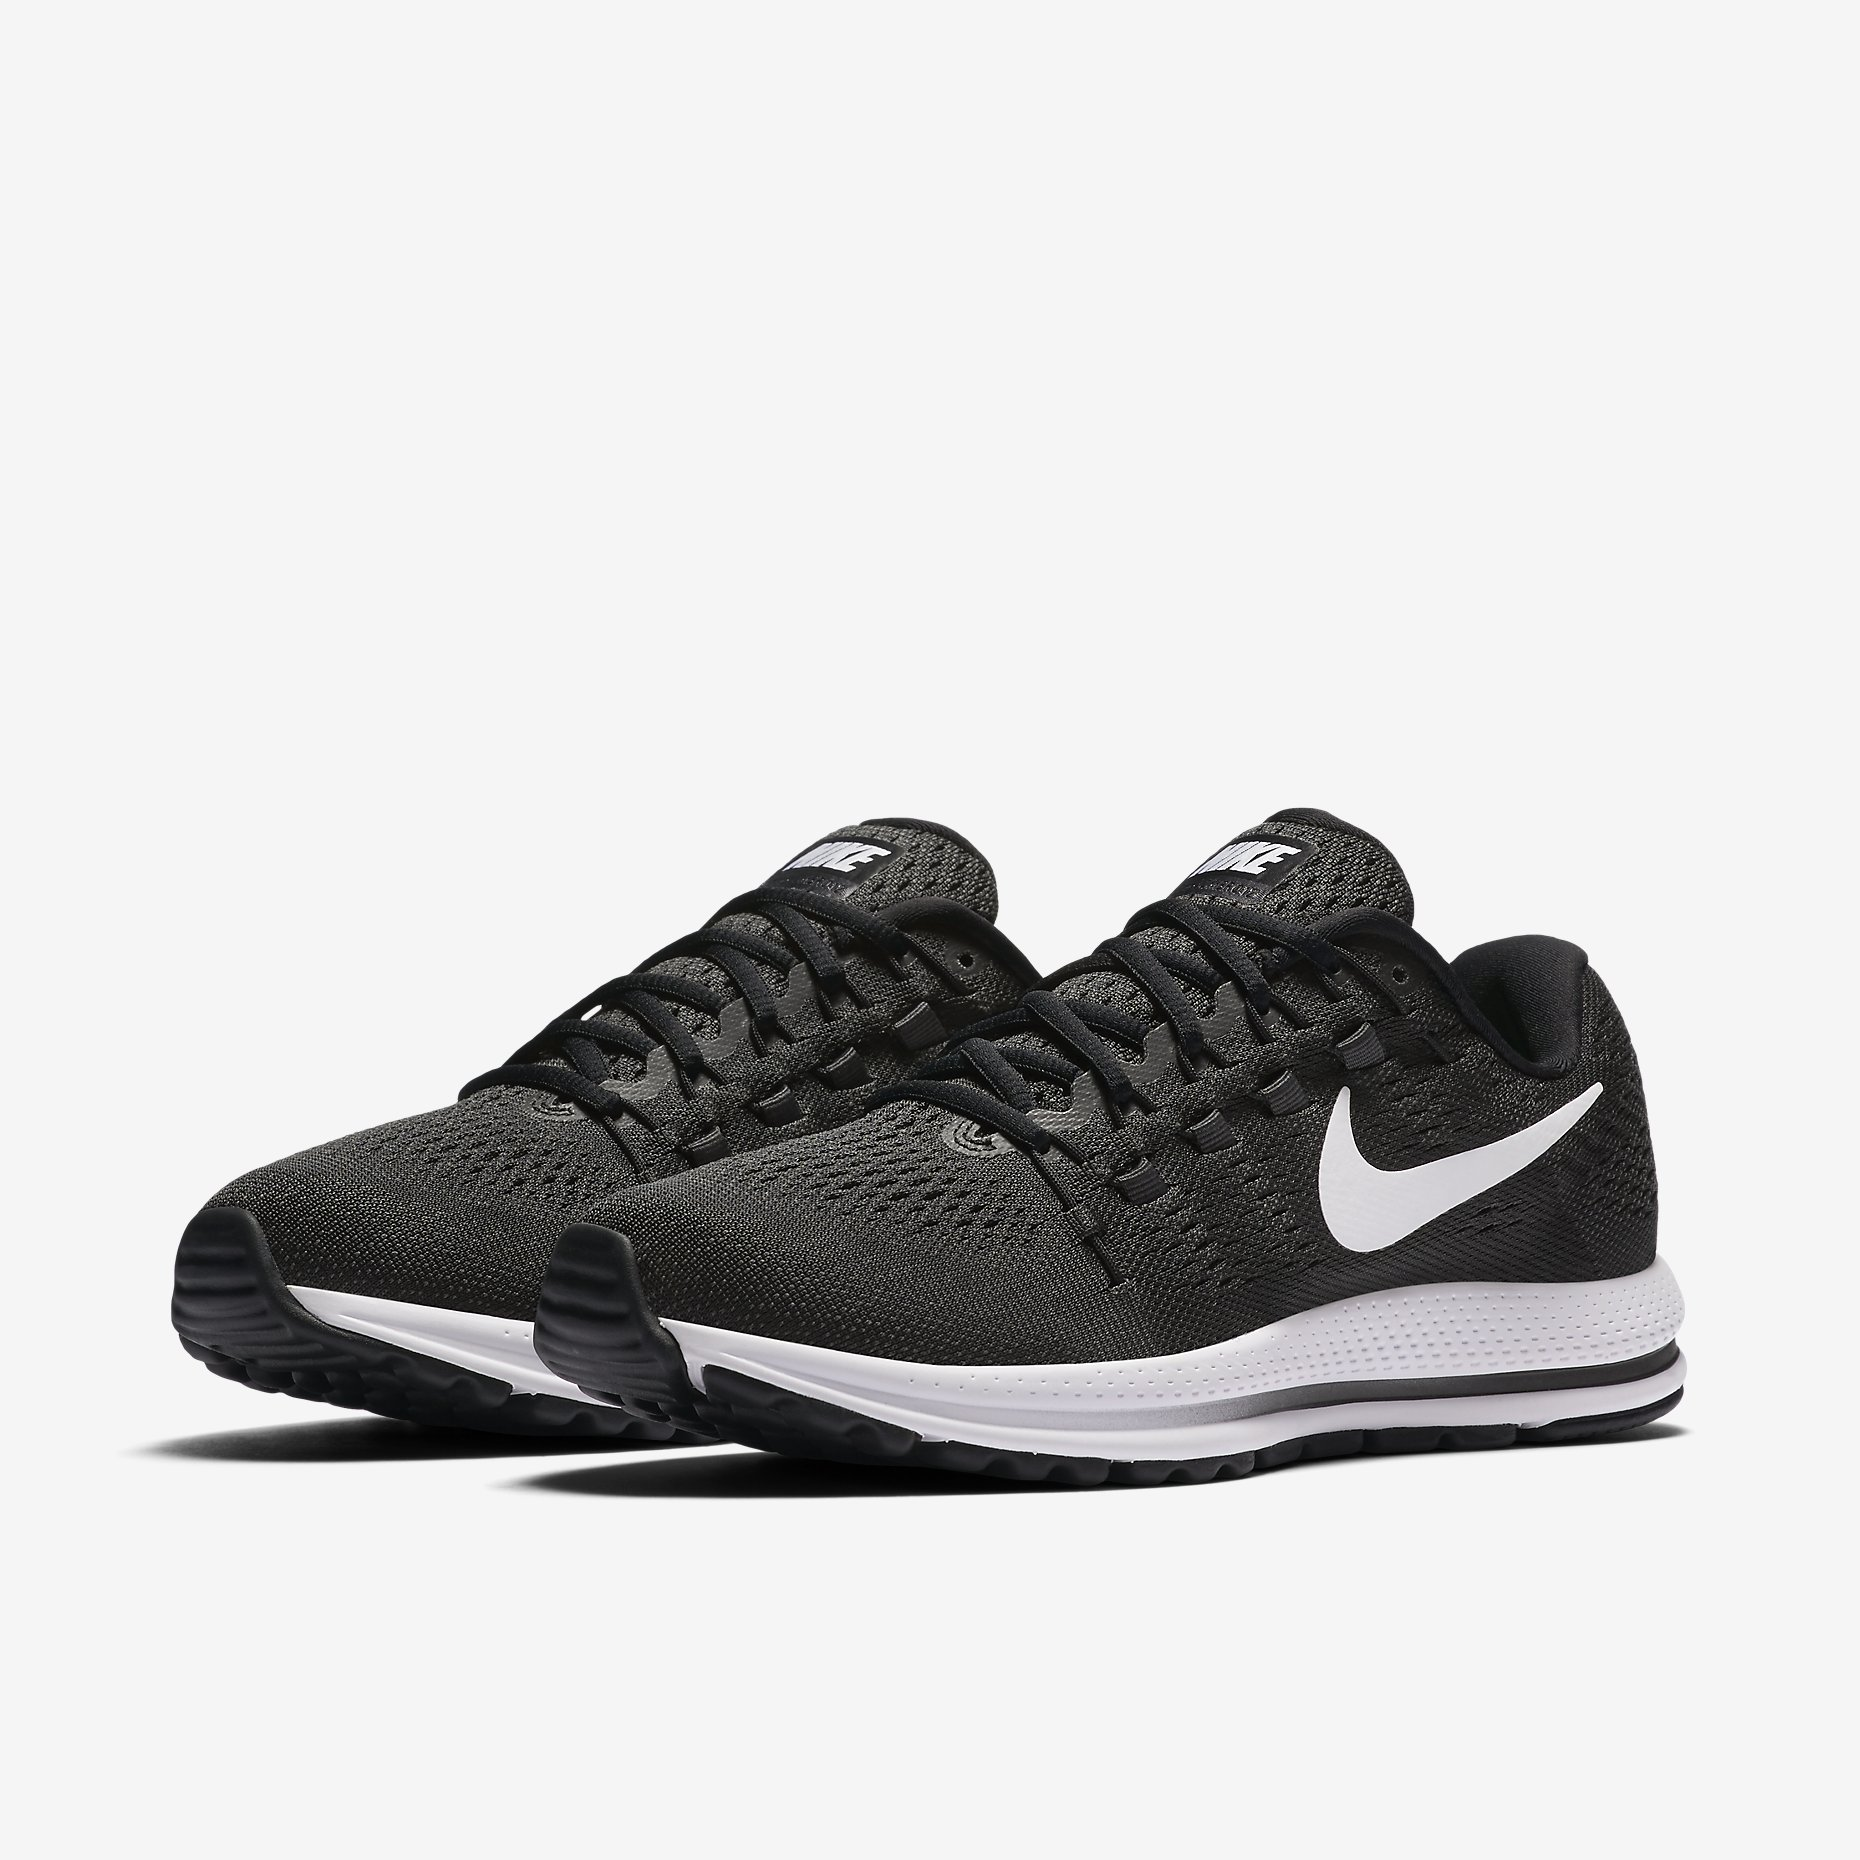 8d32e8a209a ... running shoes nike air zoom vomero 10 cool grey white black blue lagoon  ljjn366e5hzswd 0d652 73e40  best nike air zoom vomero 12 mens 0087d fa290